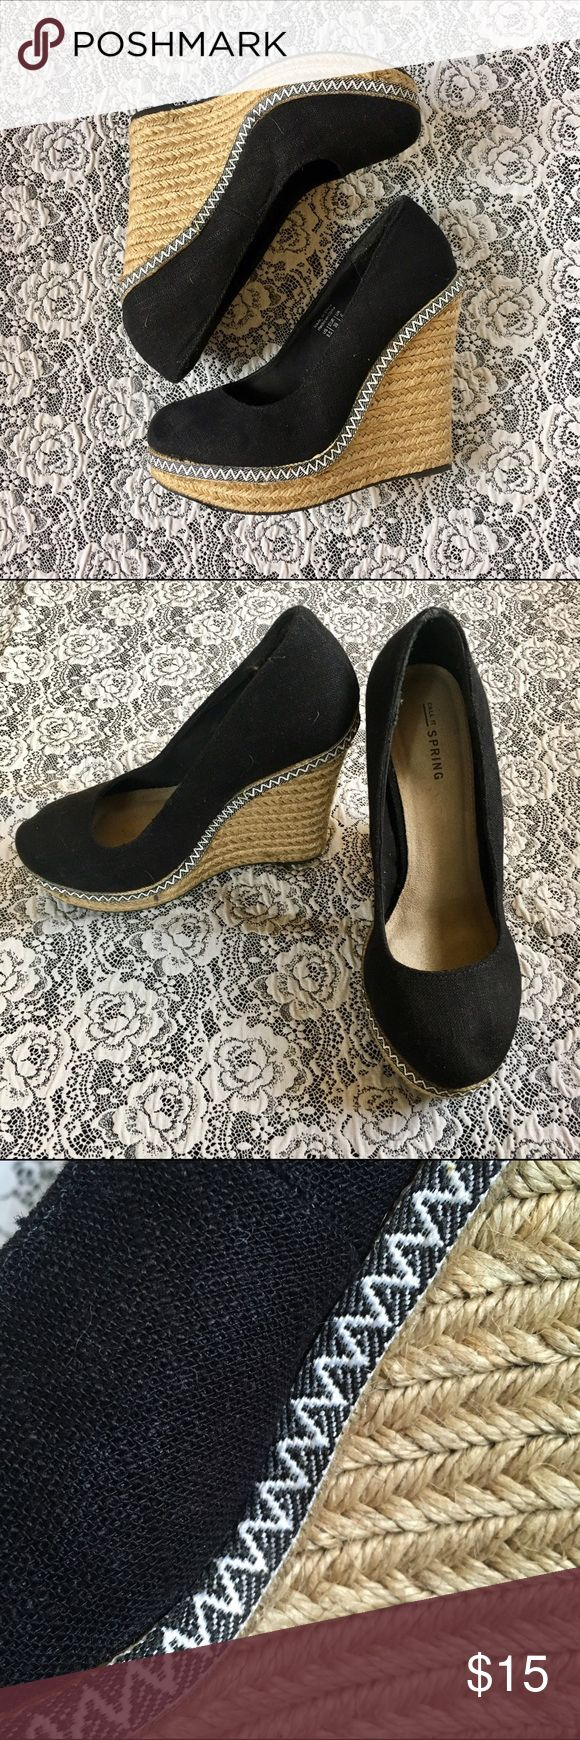 "Black Espadrilles Brand is Call it spring! Size 8.5 and they have a 5"" wedge heel with about 1"" platform. They have only been worn a handful of times and have held up great. Virtually no wear but did include pics of the soles to show. Thanks for shopping!❤️ Call It Spring Shoes Espadrilles"